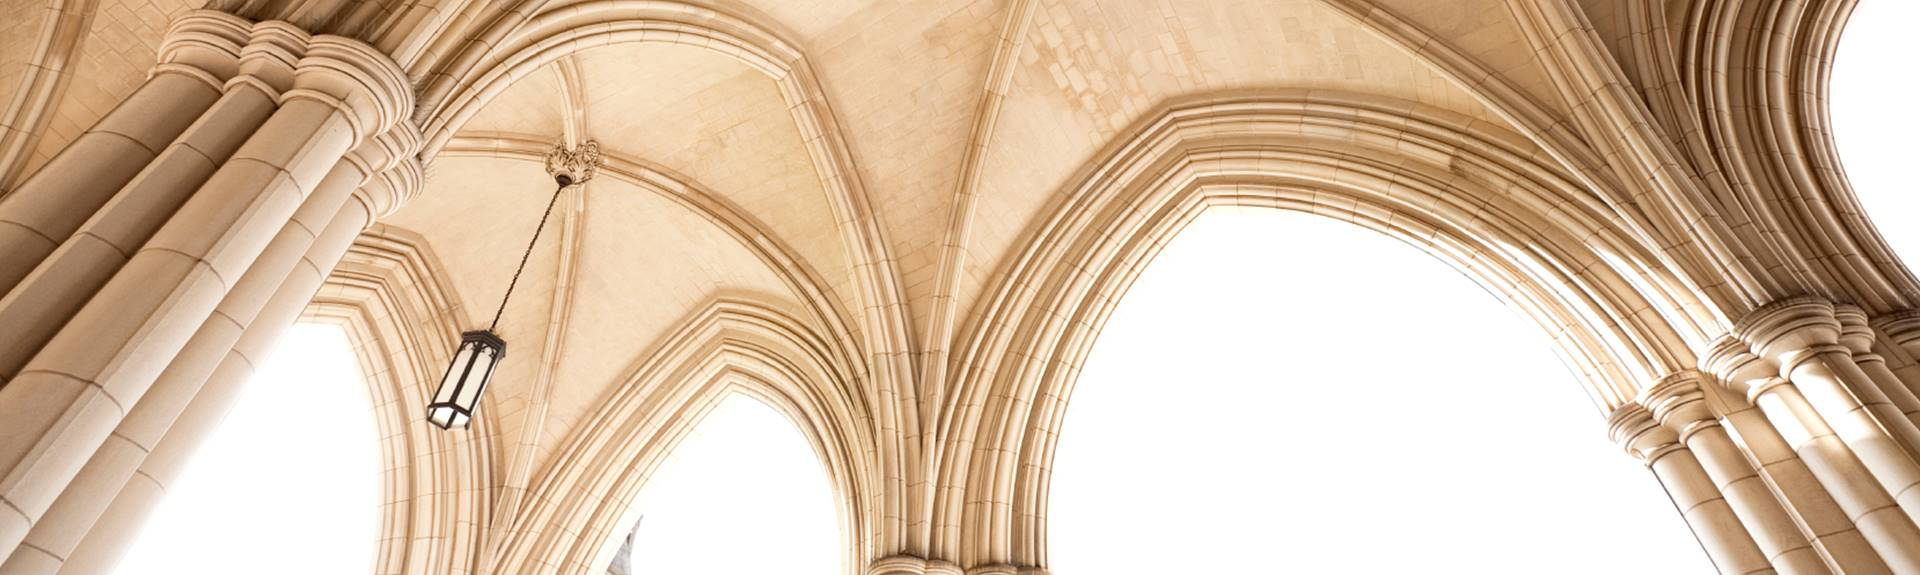 Gothic ceiling arches